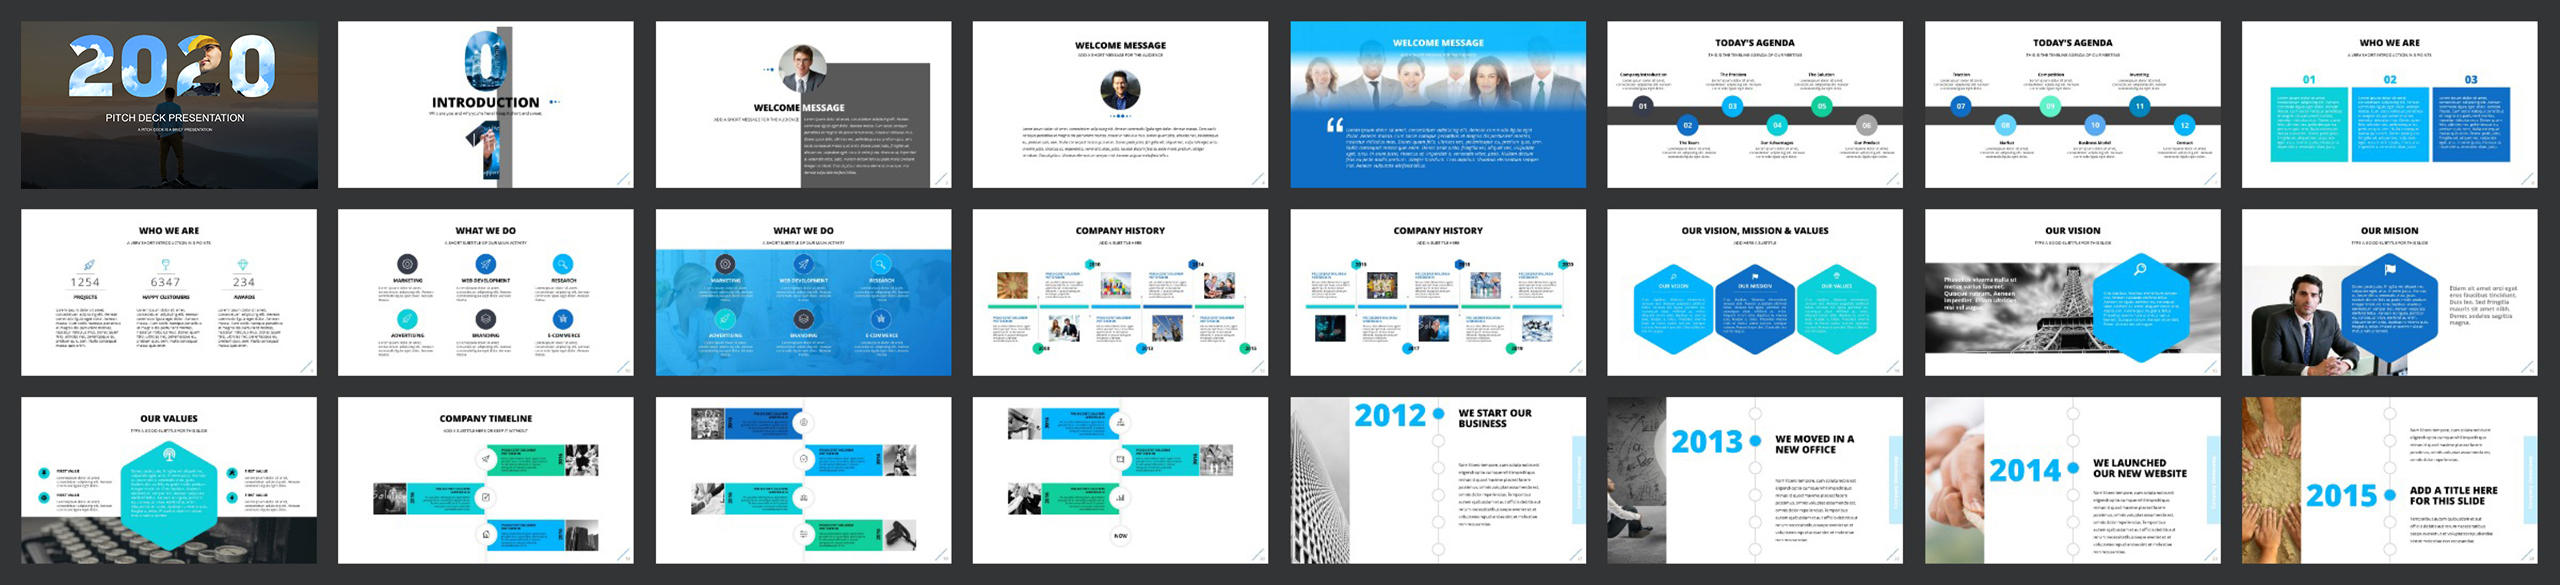 Pitch Deck 2020 PowerPoint Template